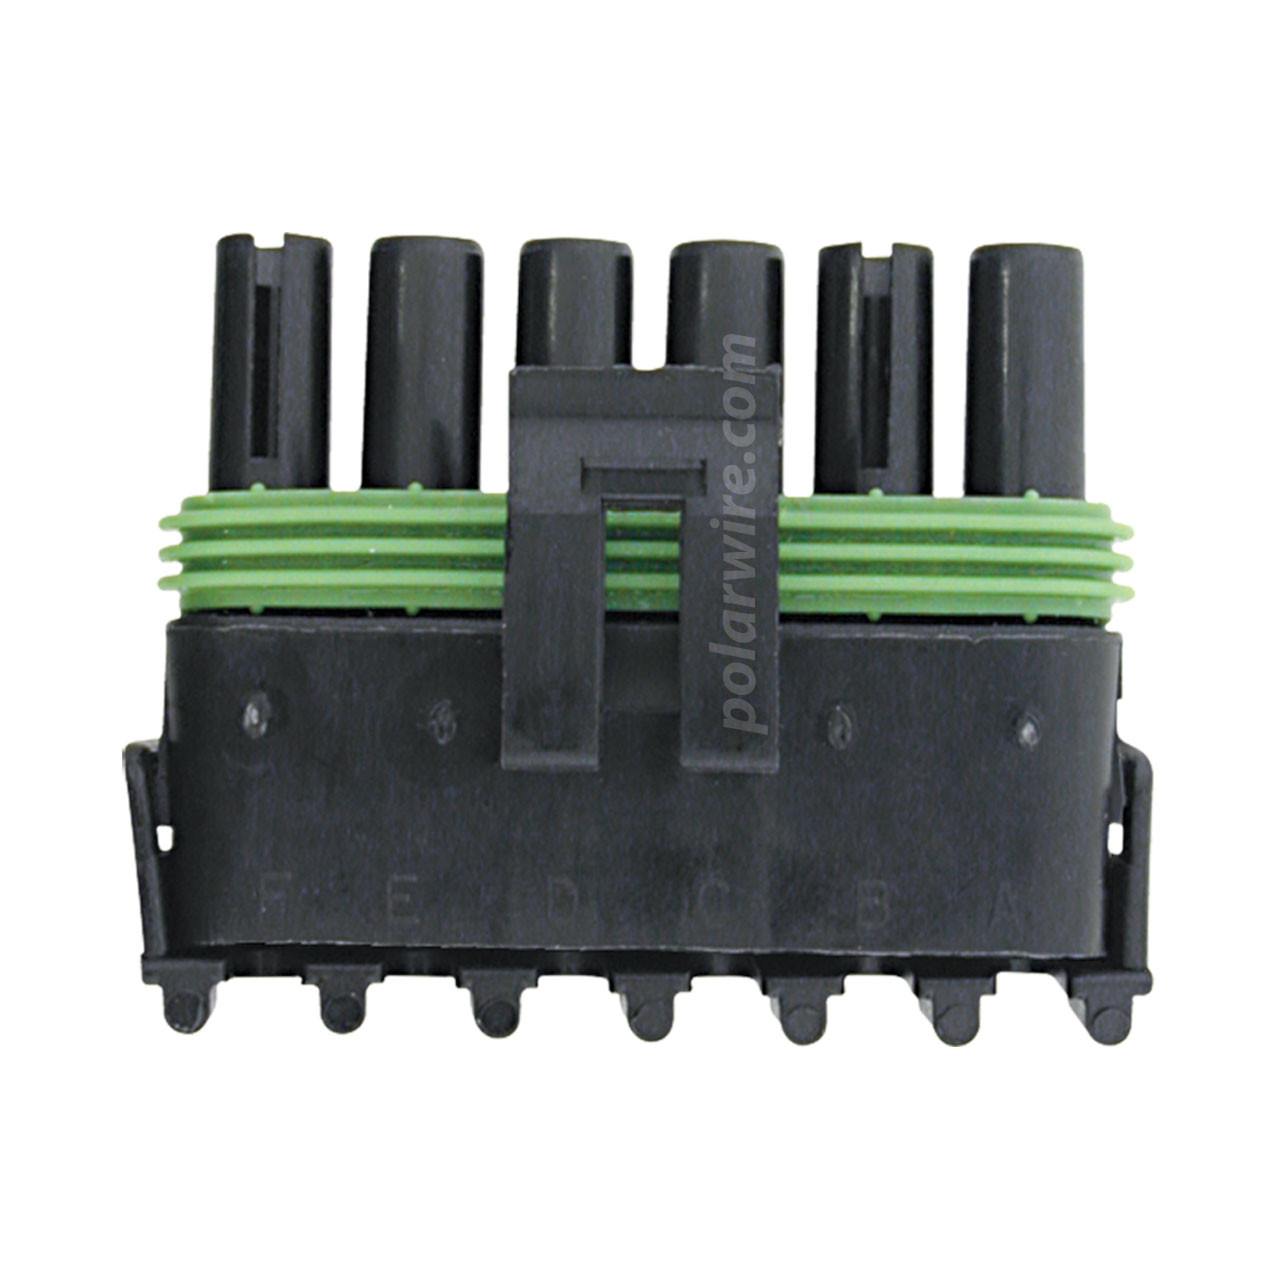 WEATHER PACK 6 PIN FEMALE  TOWER HOUSING